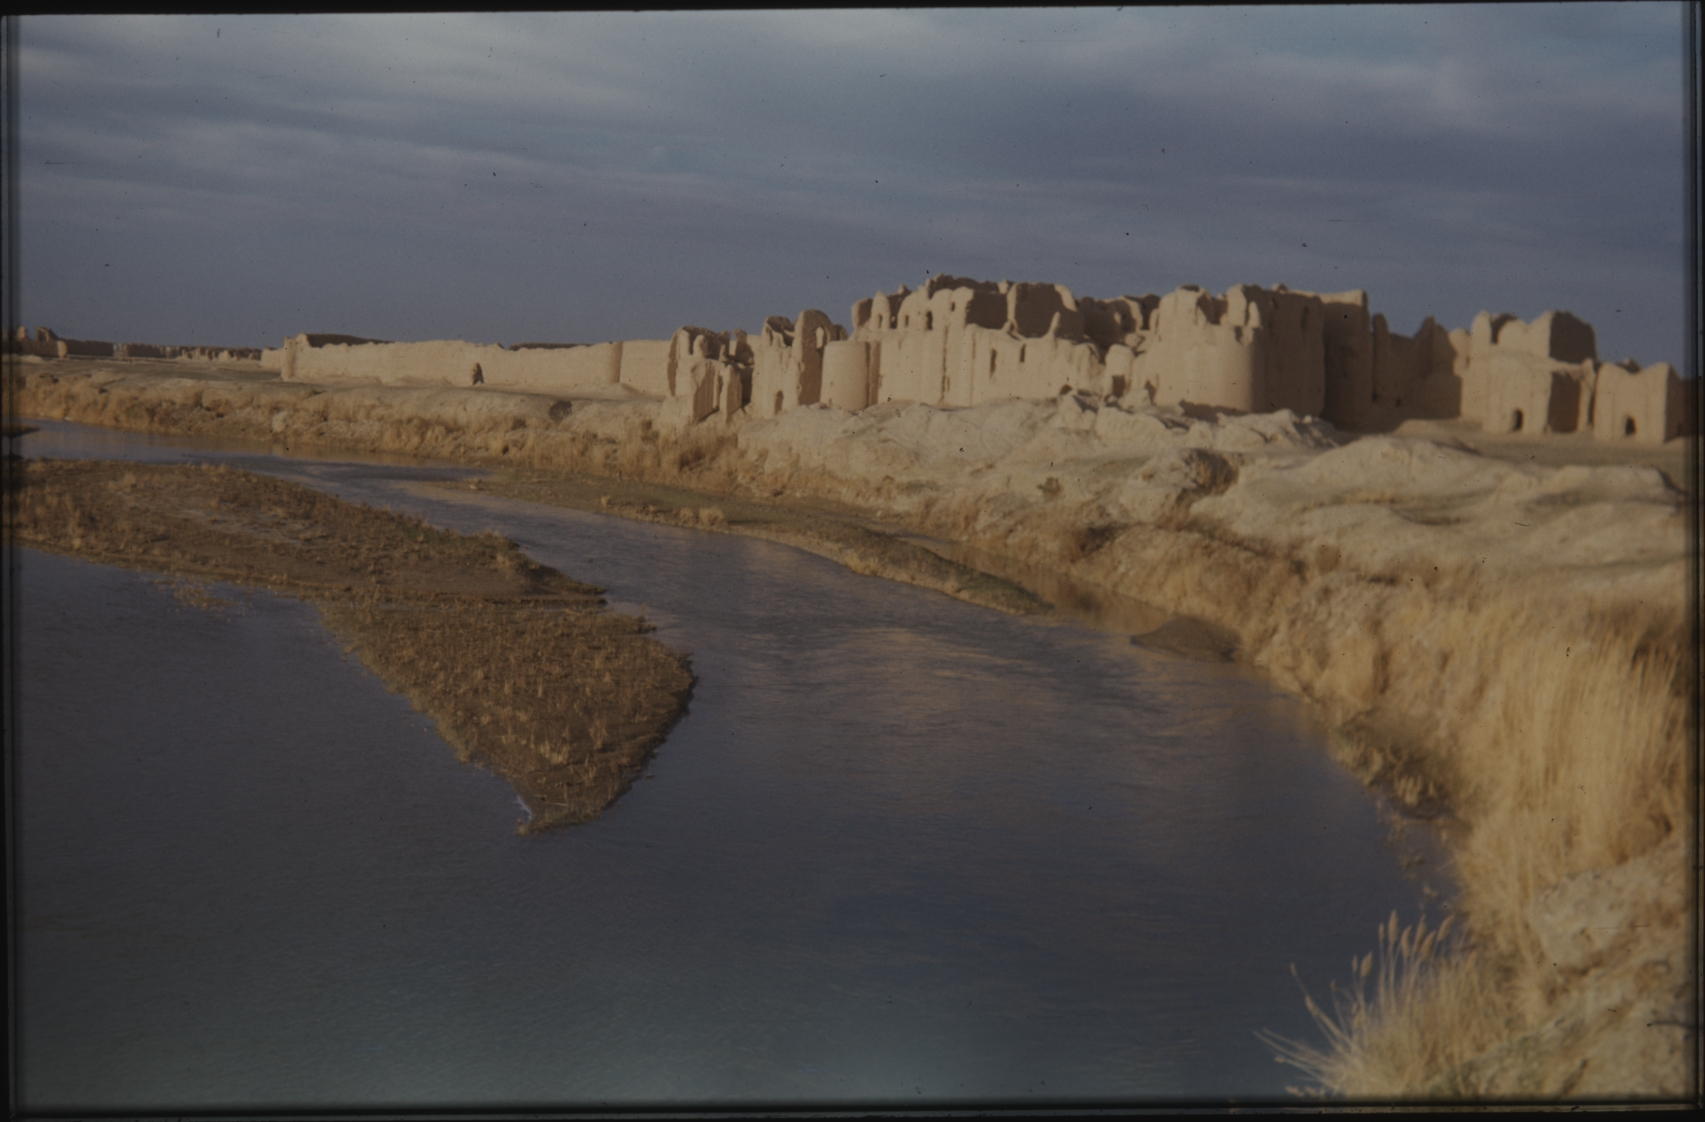 Most of the buildings in the country are made of clay and merge beautifully into the landscape. The Henning Haslund-Christensen Memorial Expedition, 1953-'55. Photo: the Moesgaard Museum archives